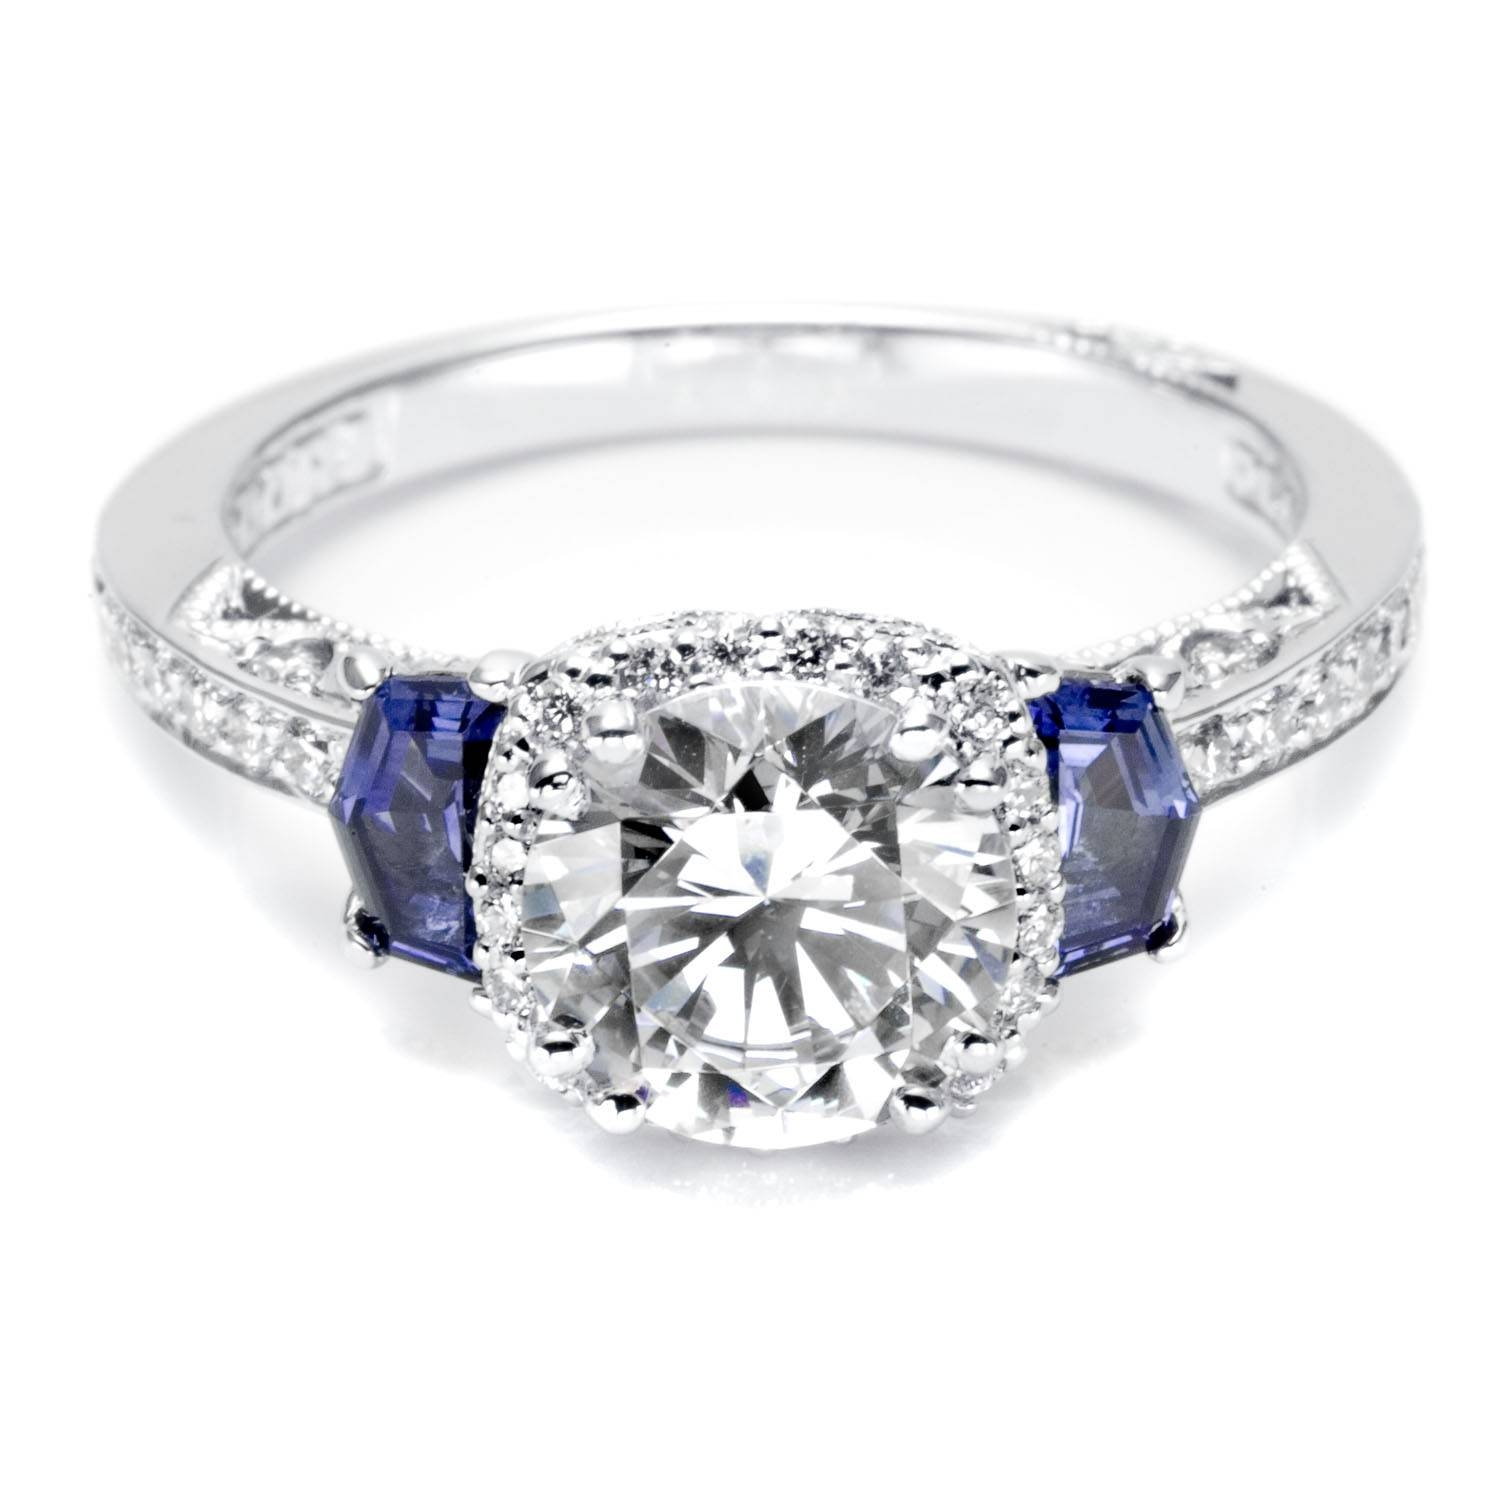 Free Diamond Rings. Engagement Rings With Diamonds And Sapphires With Diamond And Sapphire Rings Engagement Rings (Gallery 1 of 15)